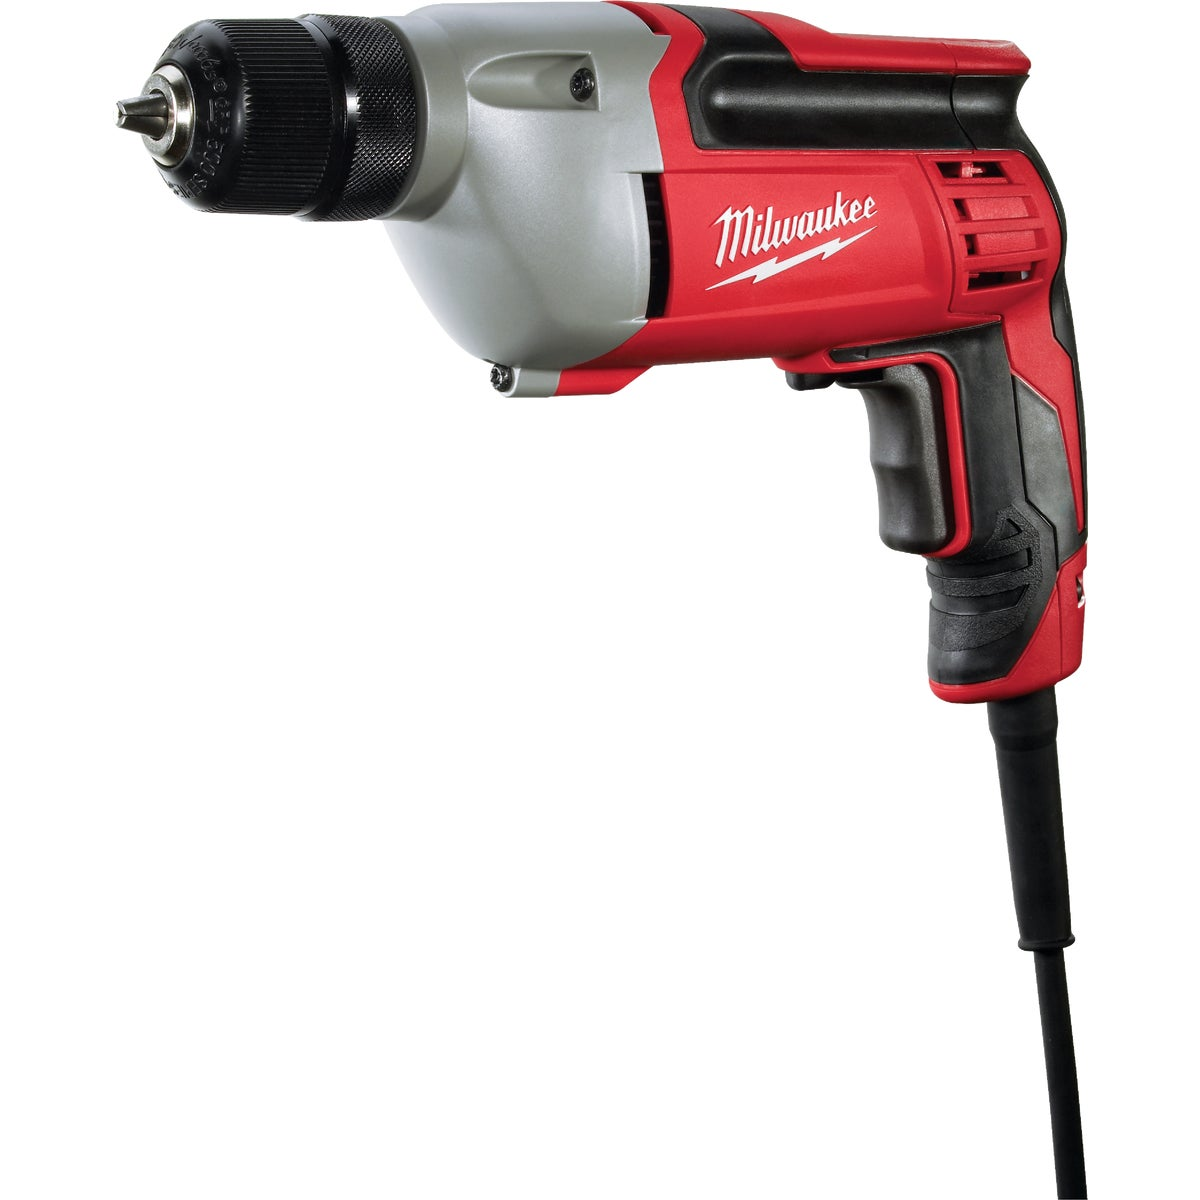 "3/8"" CORDED DRILL - 024020 by Milwaukee Elec Tool"